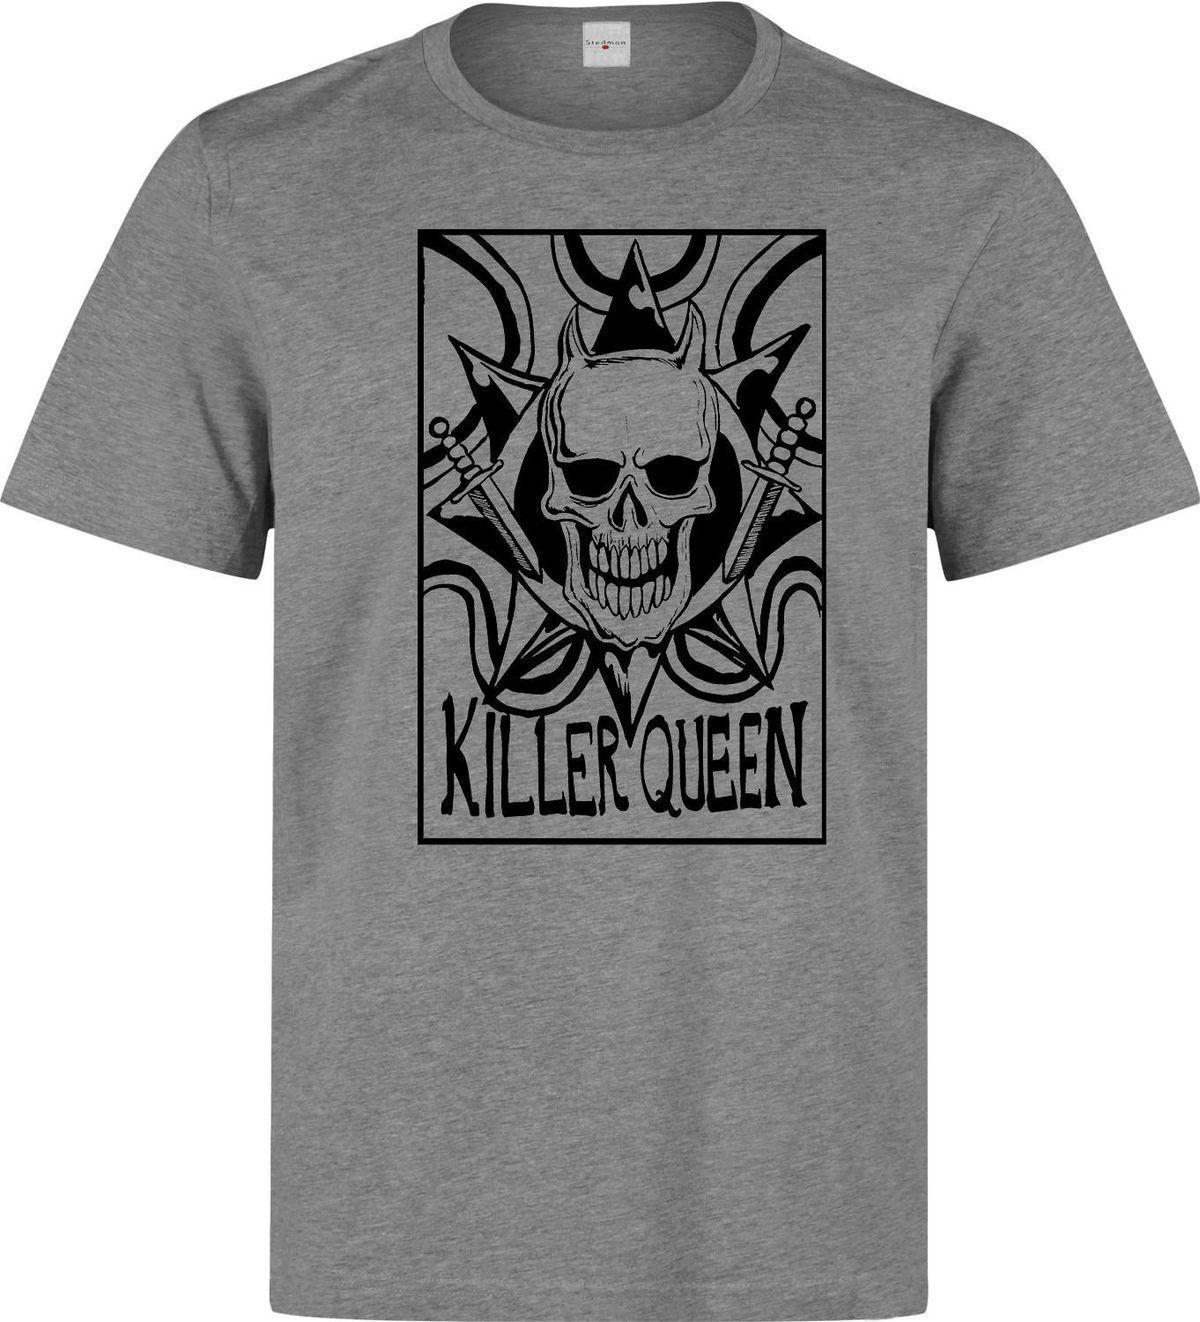 Jojo s Bizarre Adventure Diamond Is Unbreakable Killer Queen men s t shirt  grey